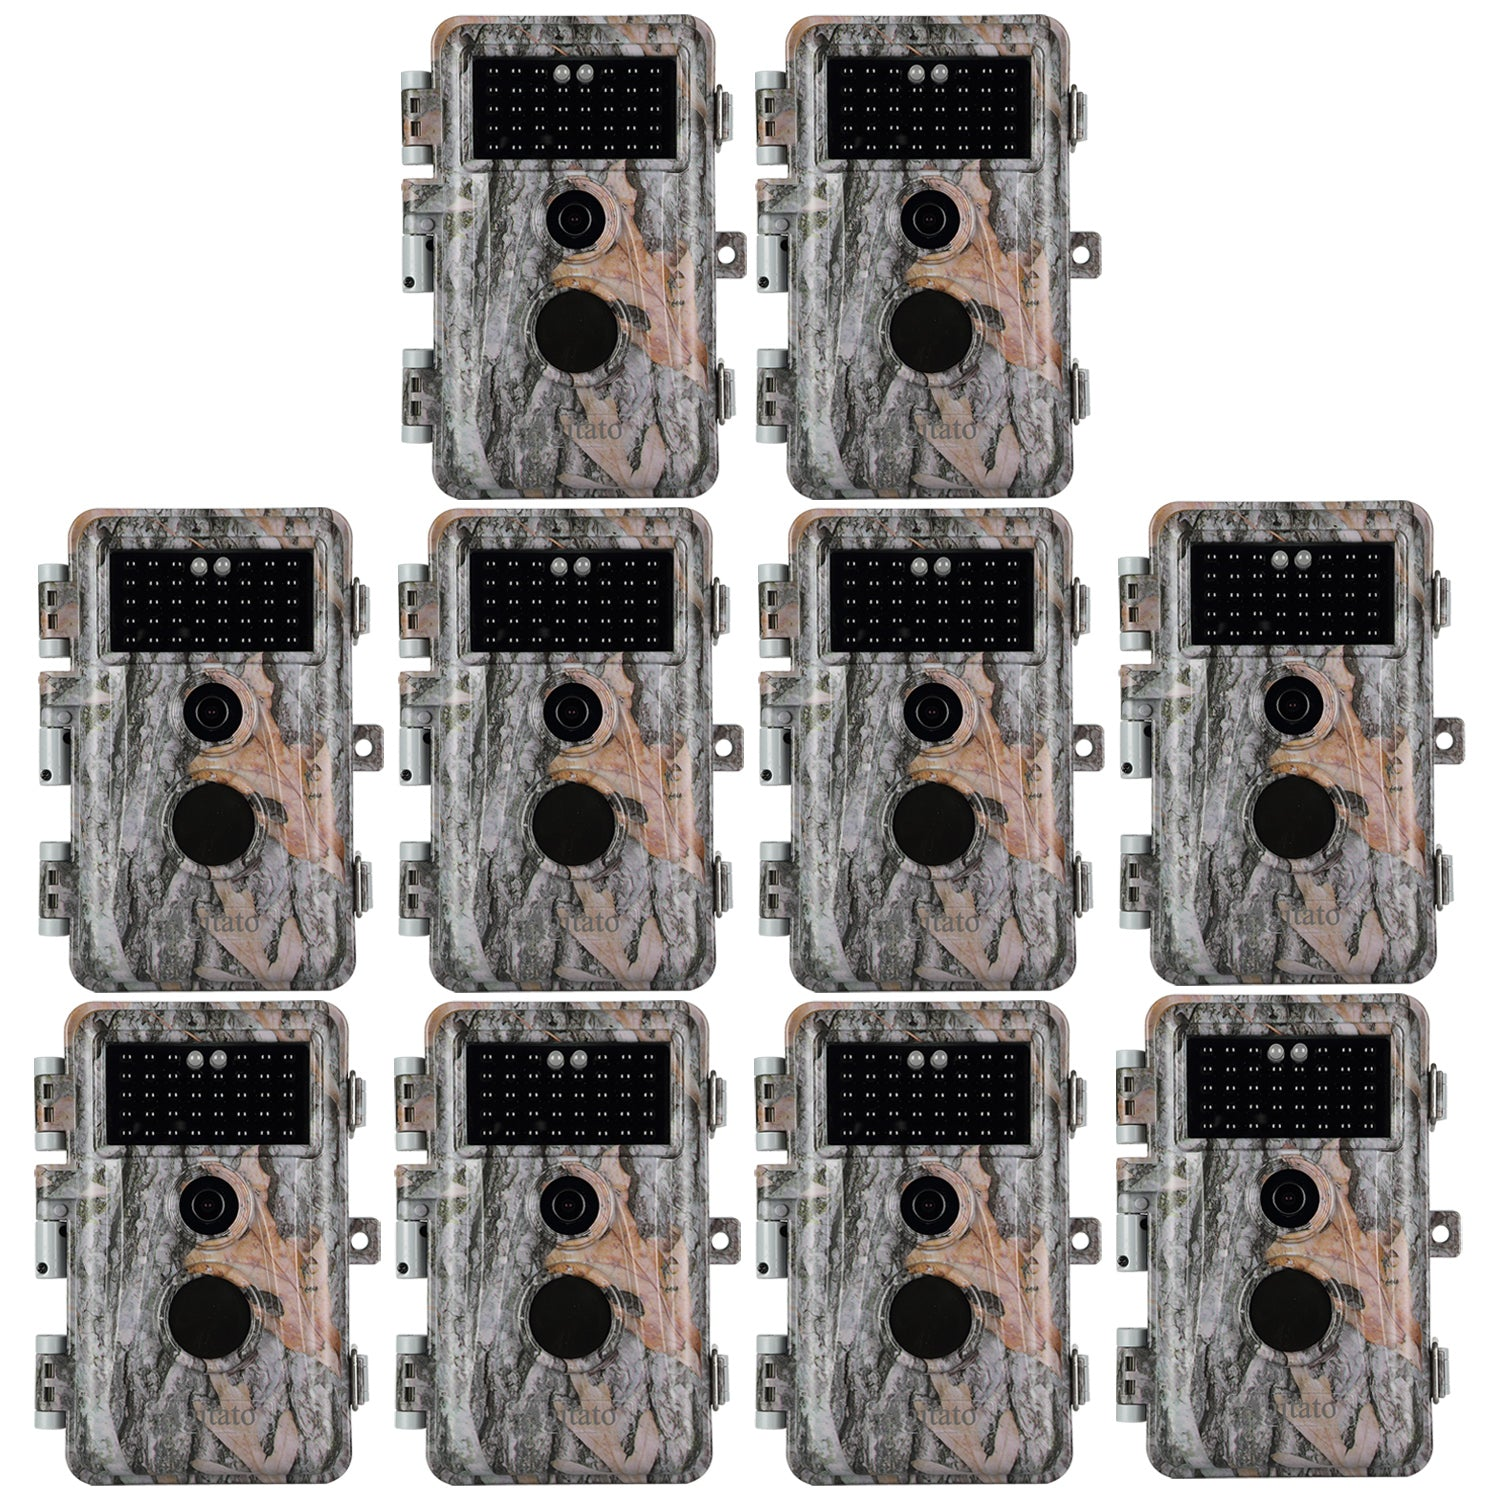 [2019 Upgraded]10-Pack Wildlife Trail Cameras 16MP Photo 1080P Video with Night Vision No Flash 940nm IR Motion Activated Time Lapse and Time Stamp